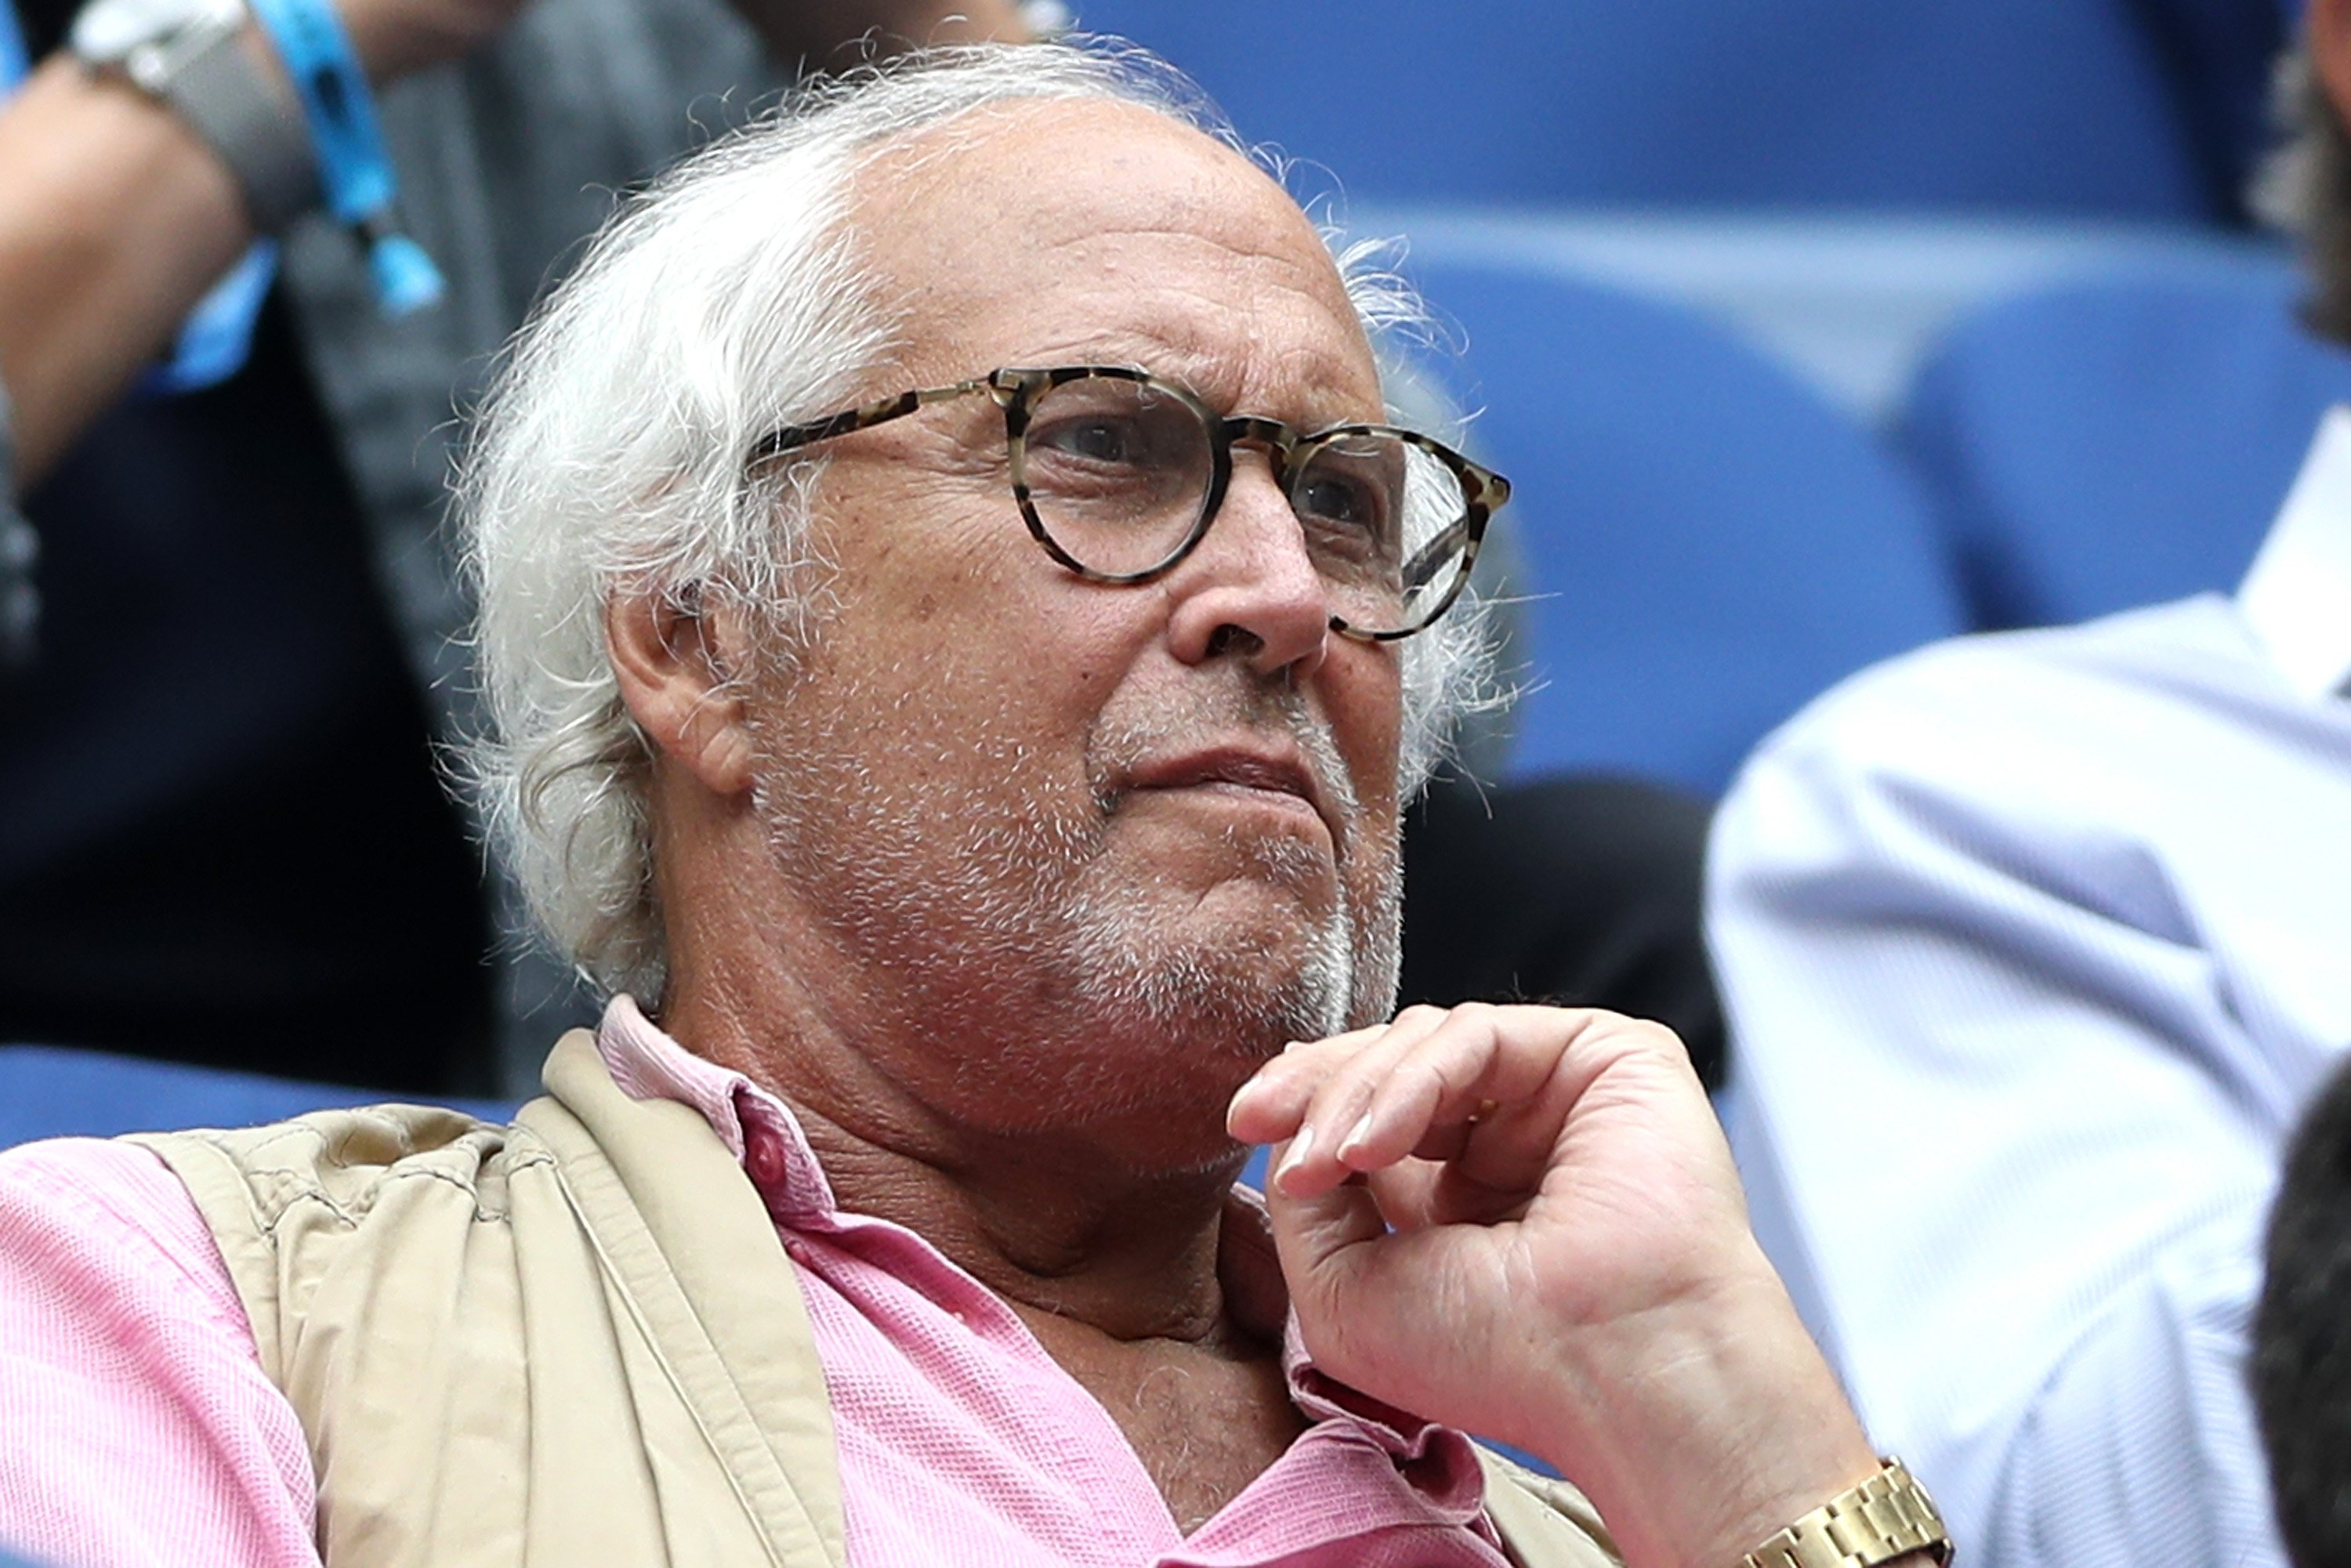 Chevy Chase in attendance at the 2018 US Open Men's Semi Final in New York, on September 7, 2018. | Photo: Getty Images.